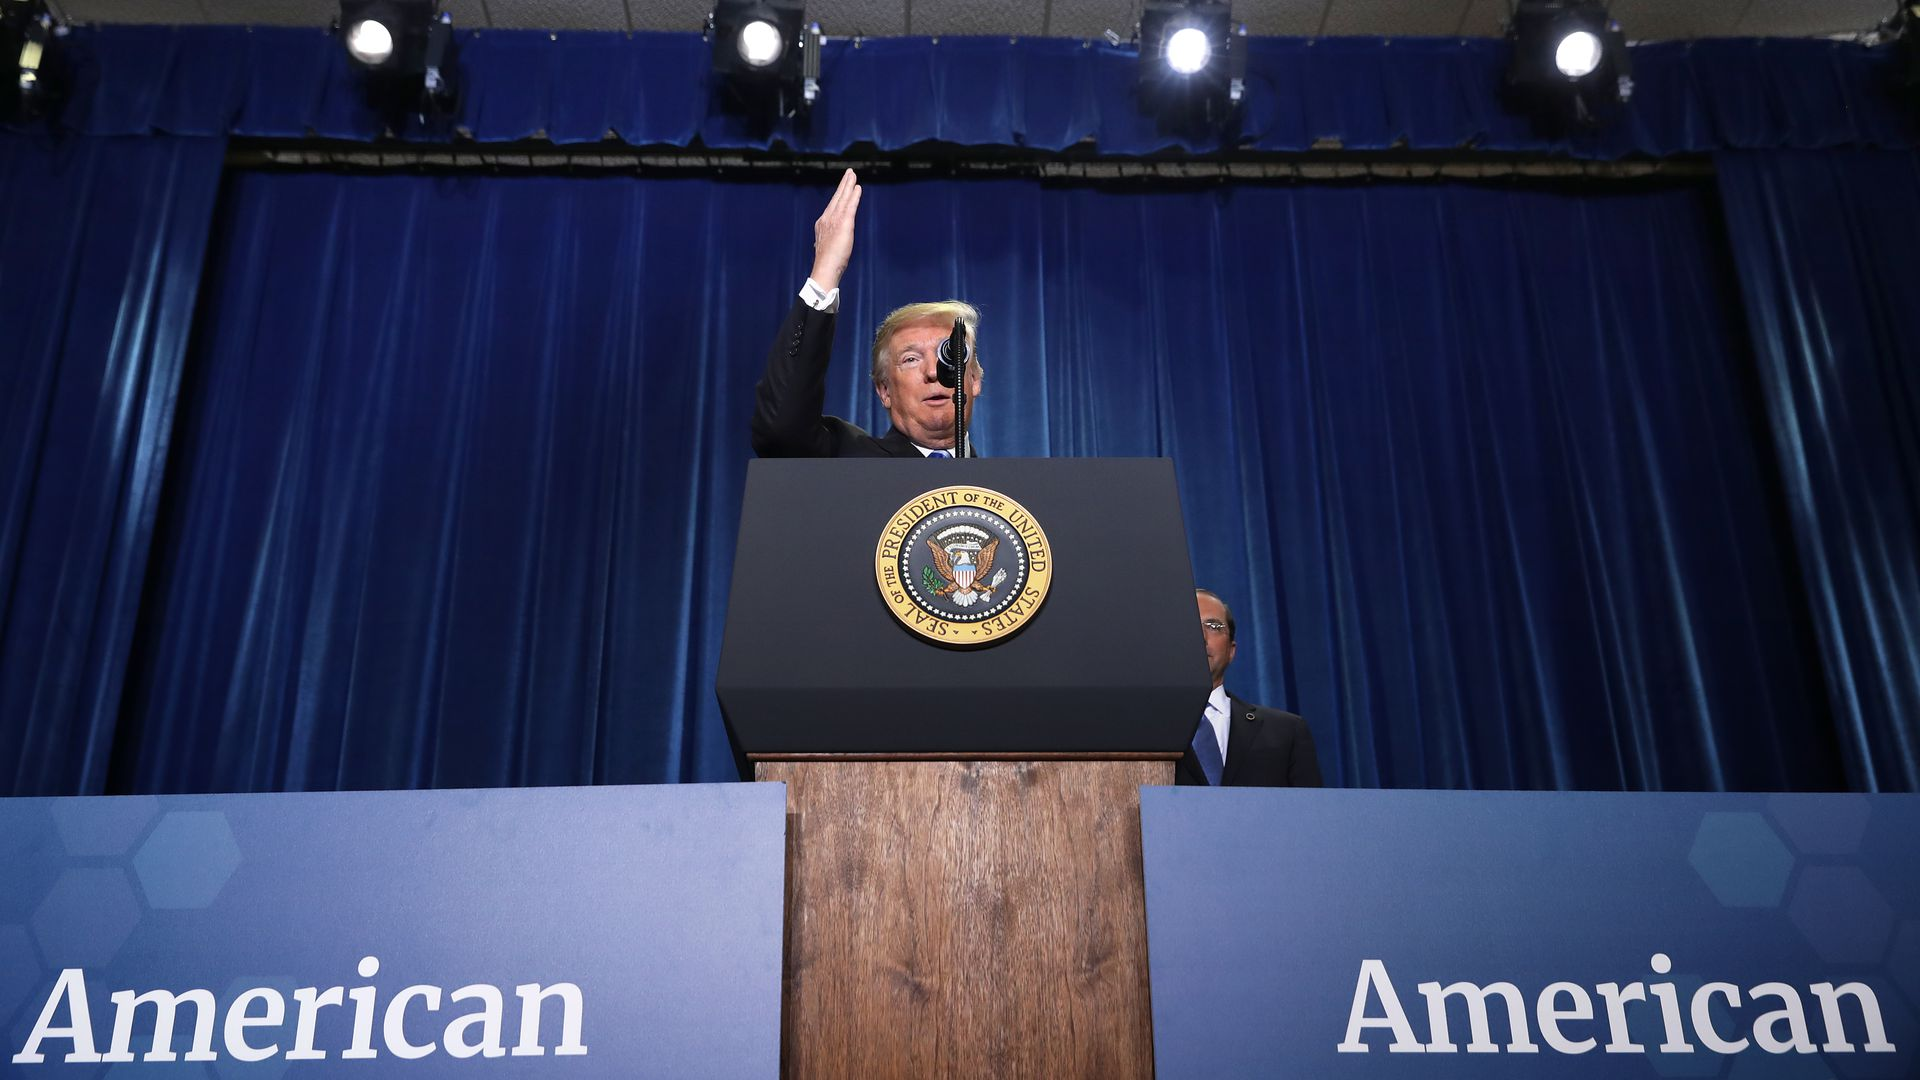 President Donald Trump on stage during a speech at the Department of Health and Human Services